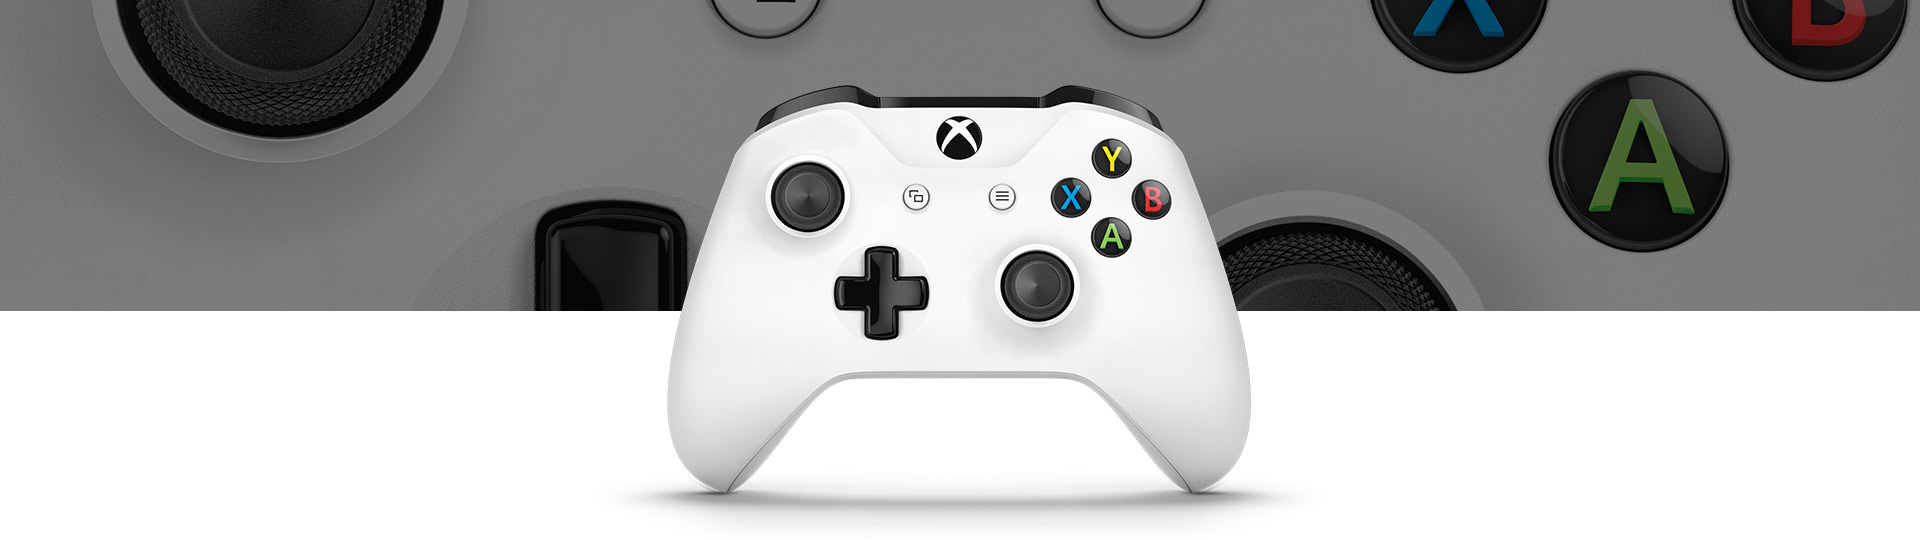 Controller Wireless per Xbox